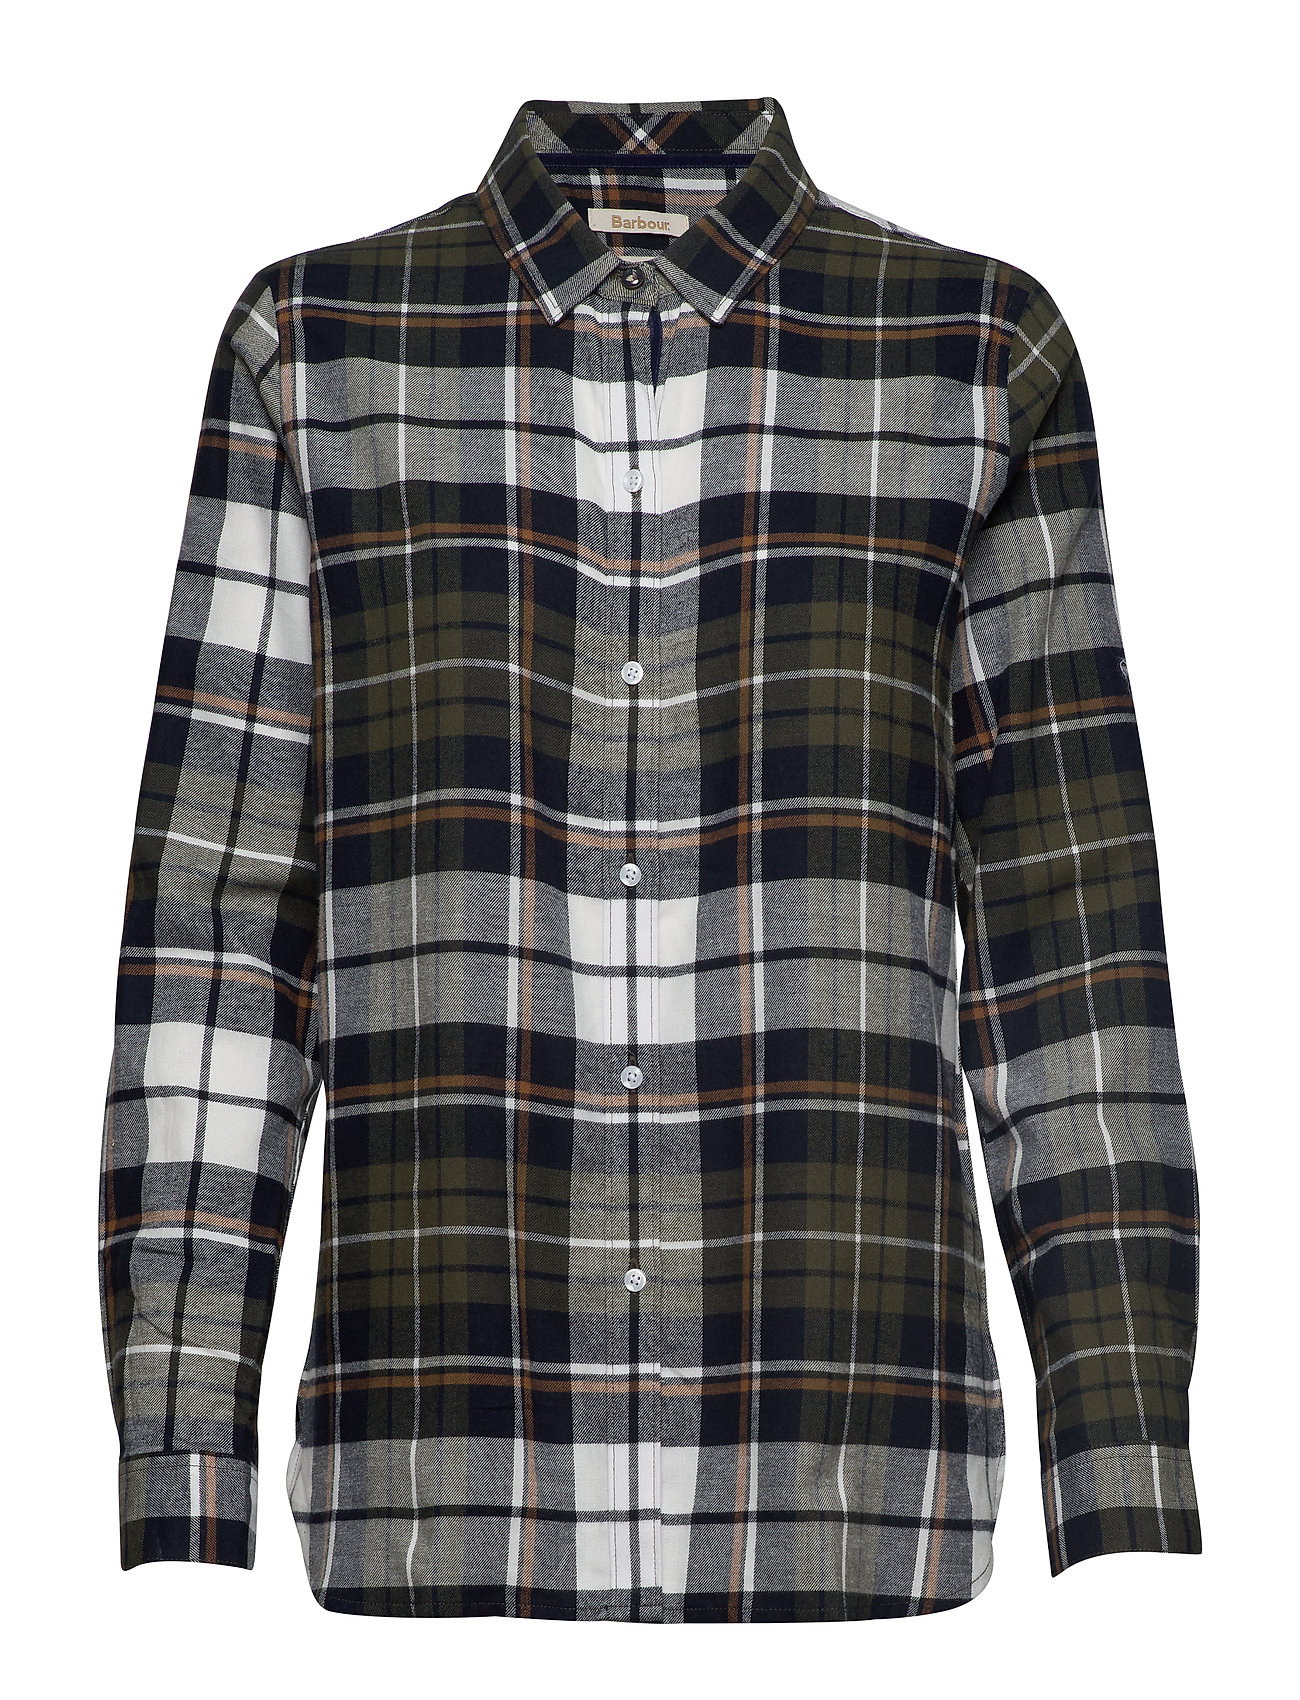 Barbour Barbour Moors Shirt - OLIVE/NAVY